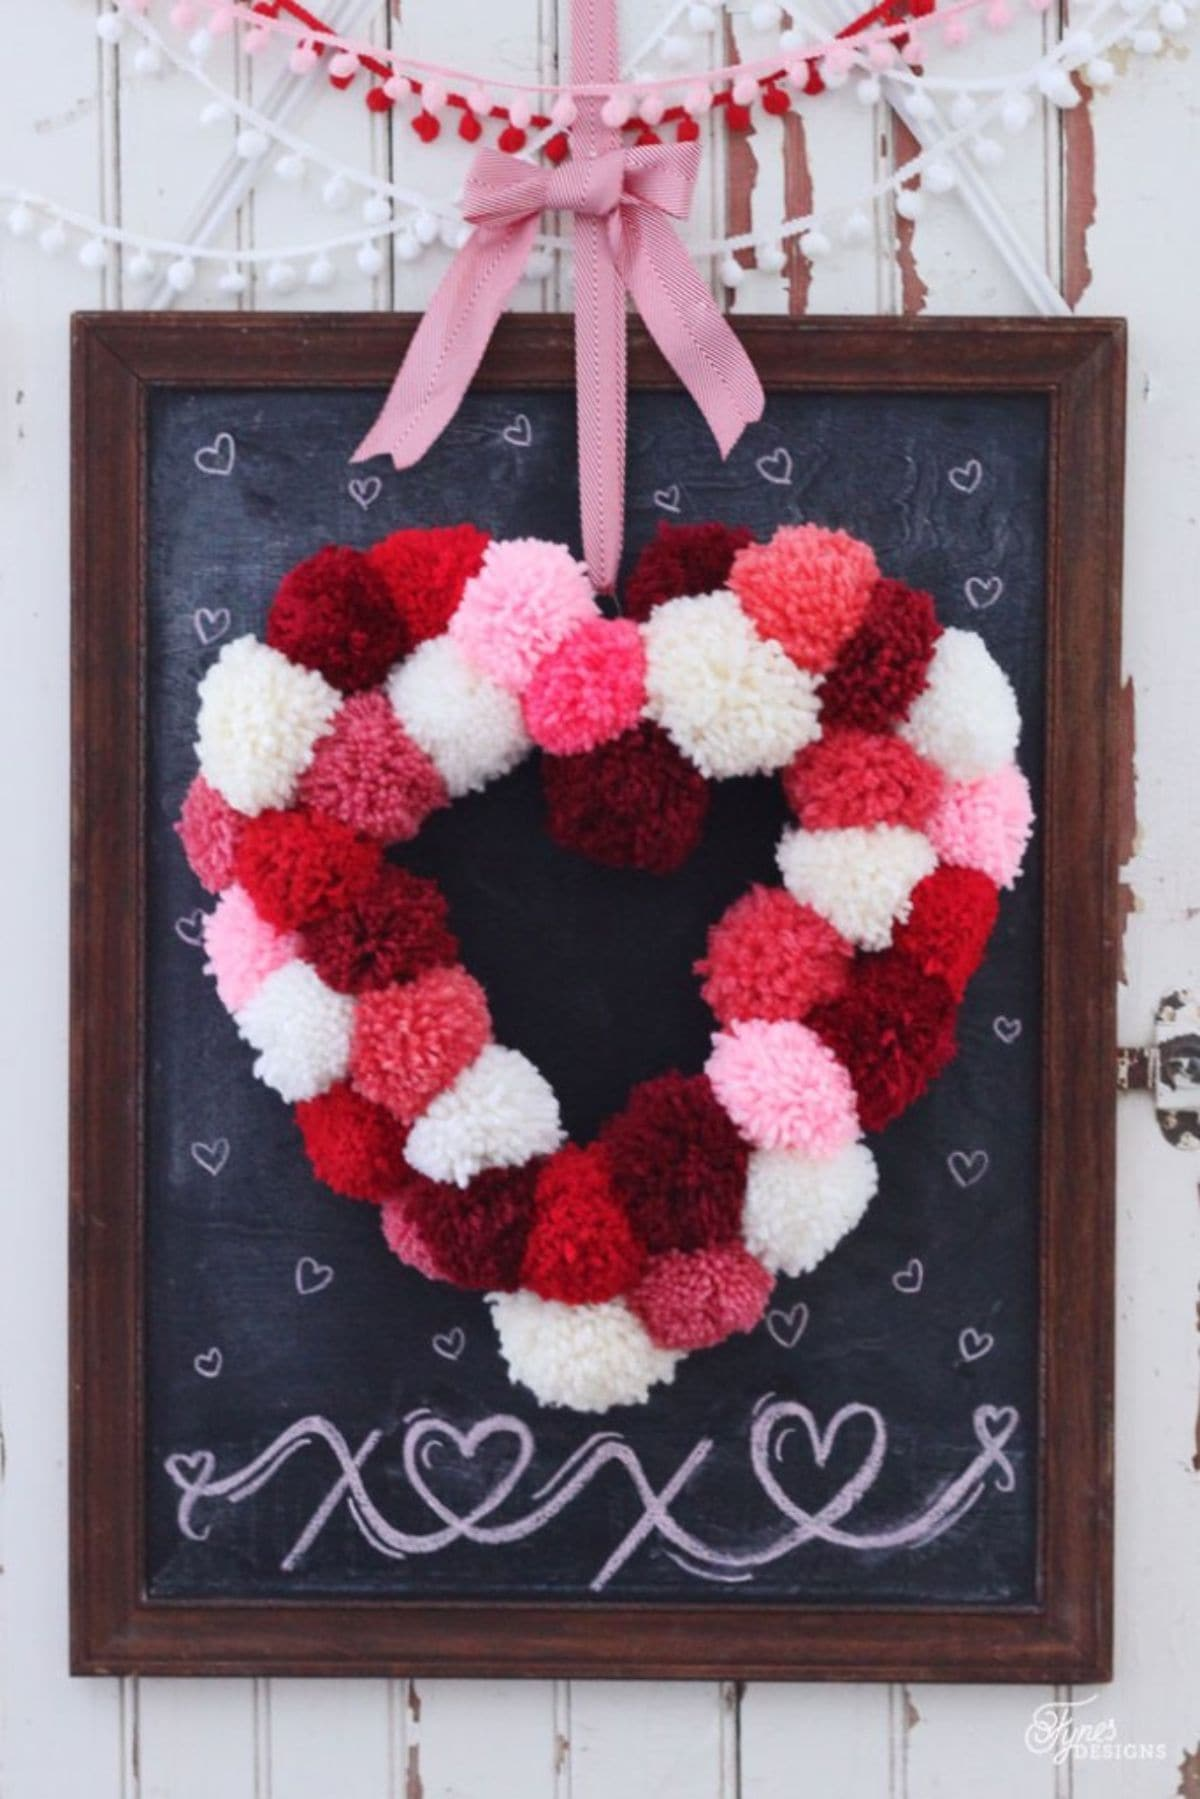 Hanging from a framed blackboard by a pink ribbon, is a heart made out of pom poms in reds, whites and pinks.